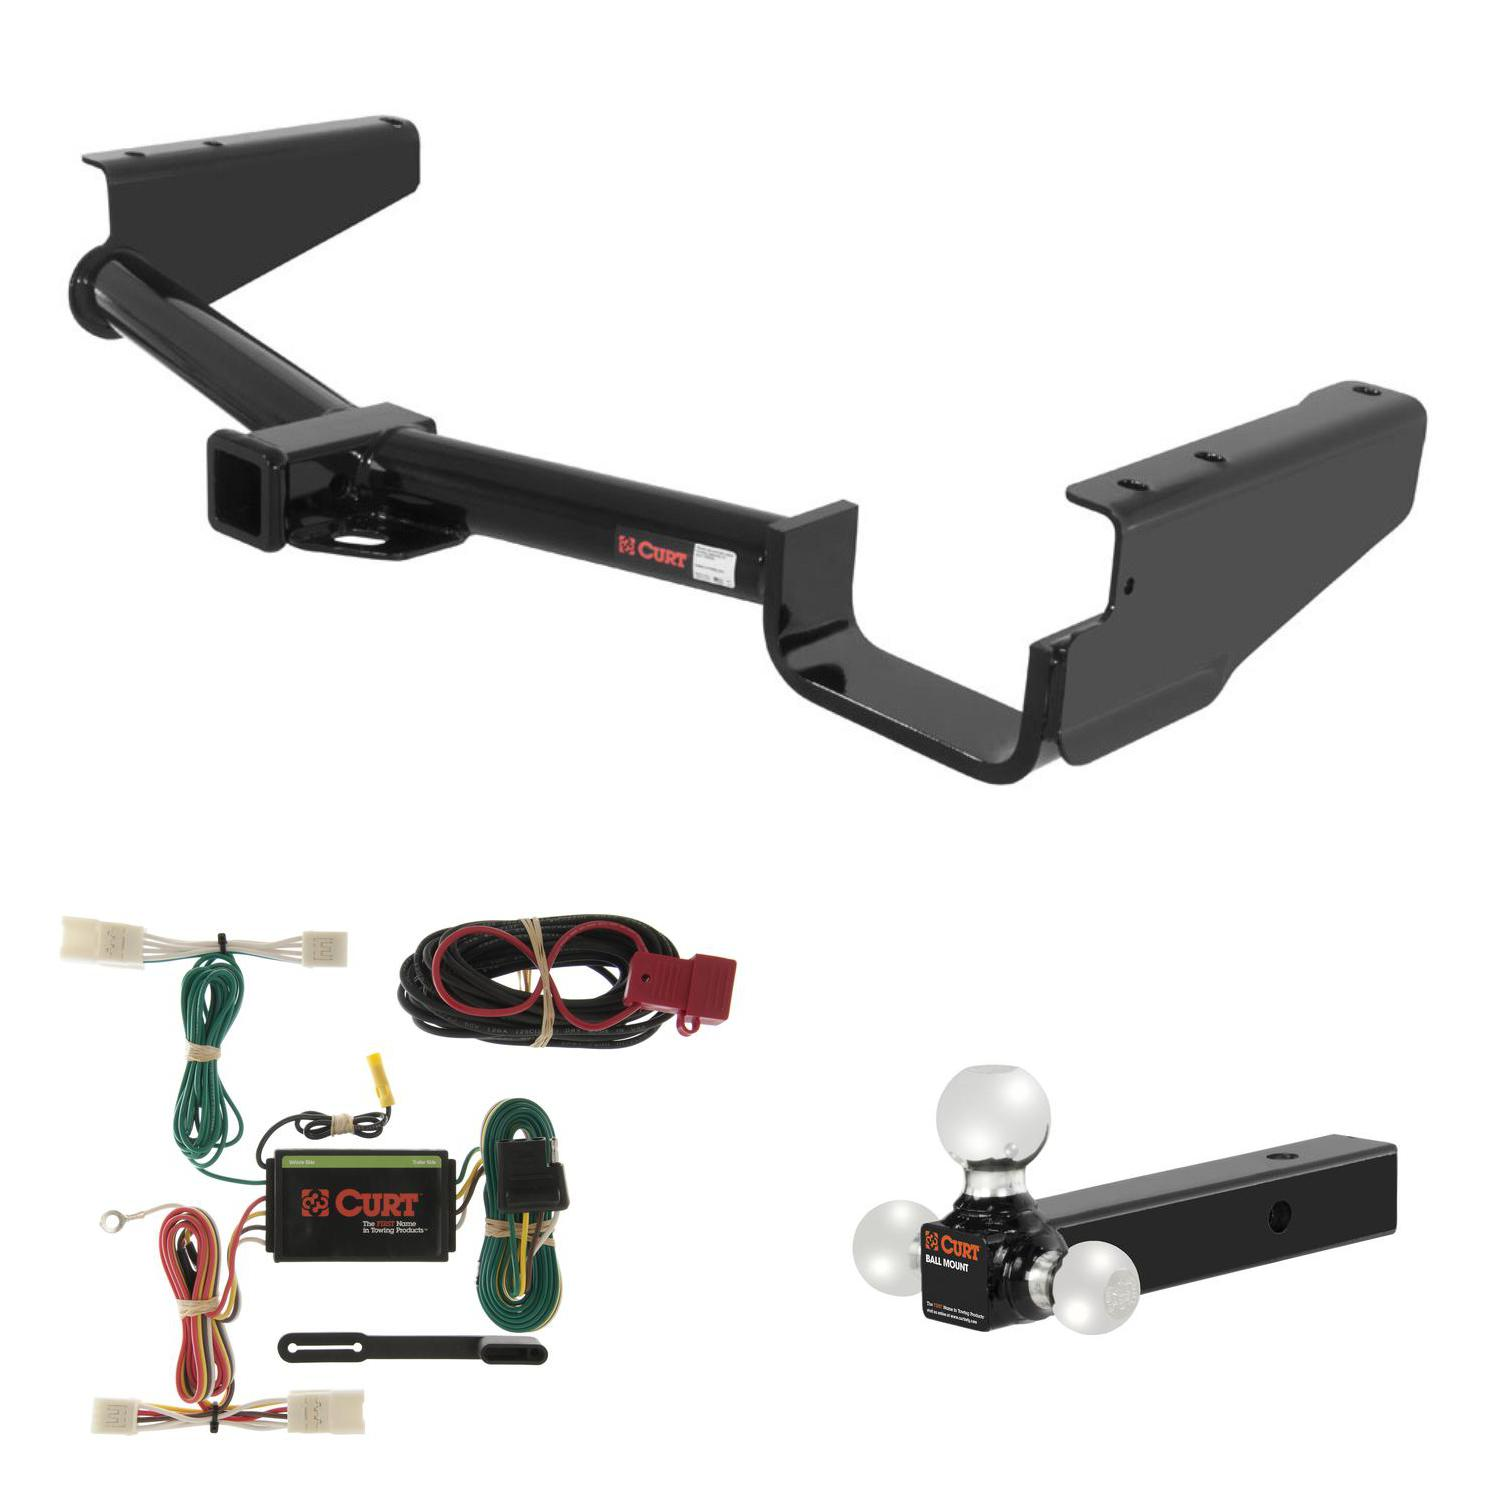 Toyota Hitch Wiring from overdrivebrands.com